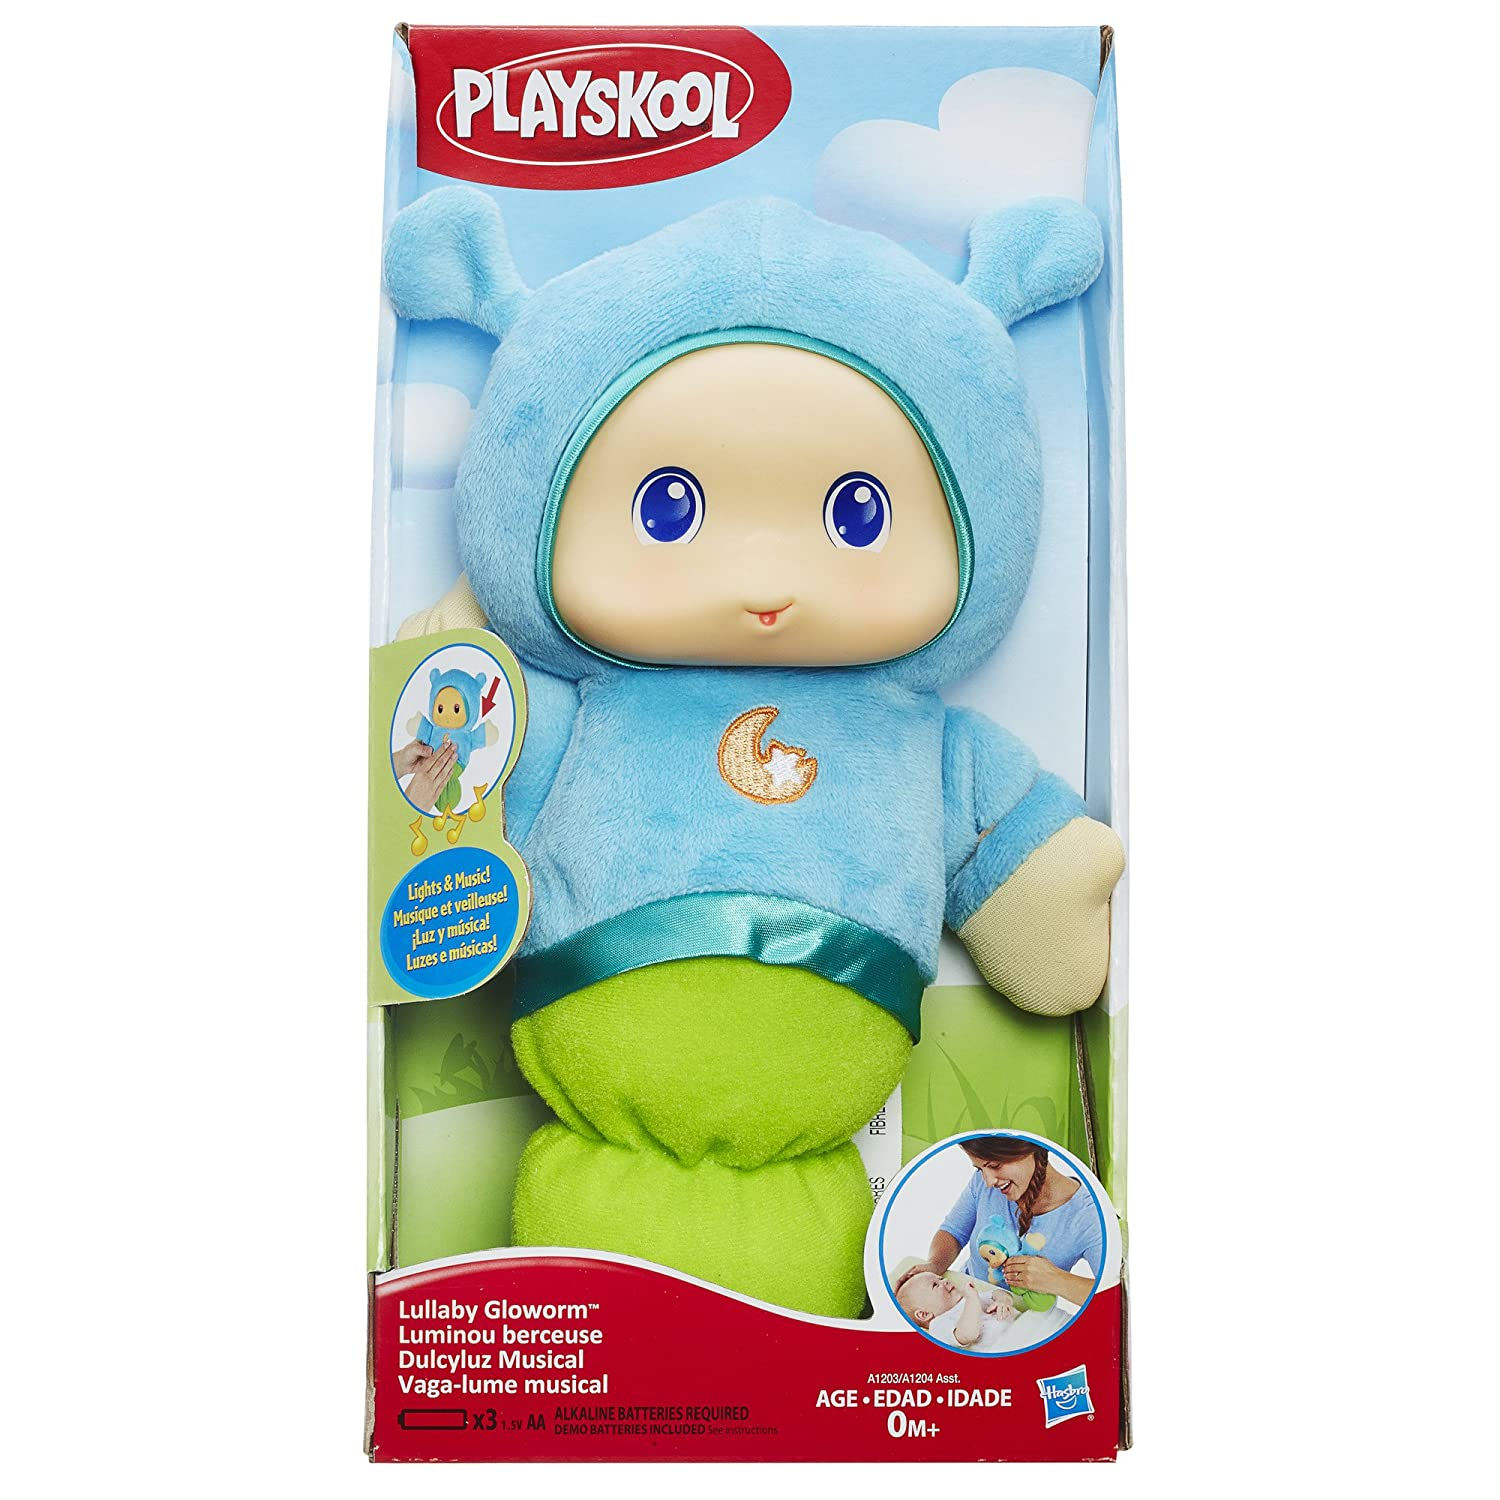 Playskool Favorites Lullaby Gloworm Toy, Blue: Amazon.ca: Toys & Games